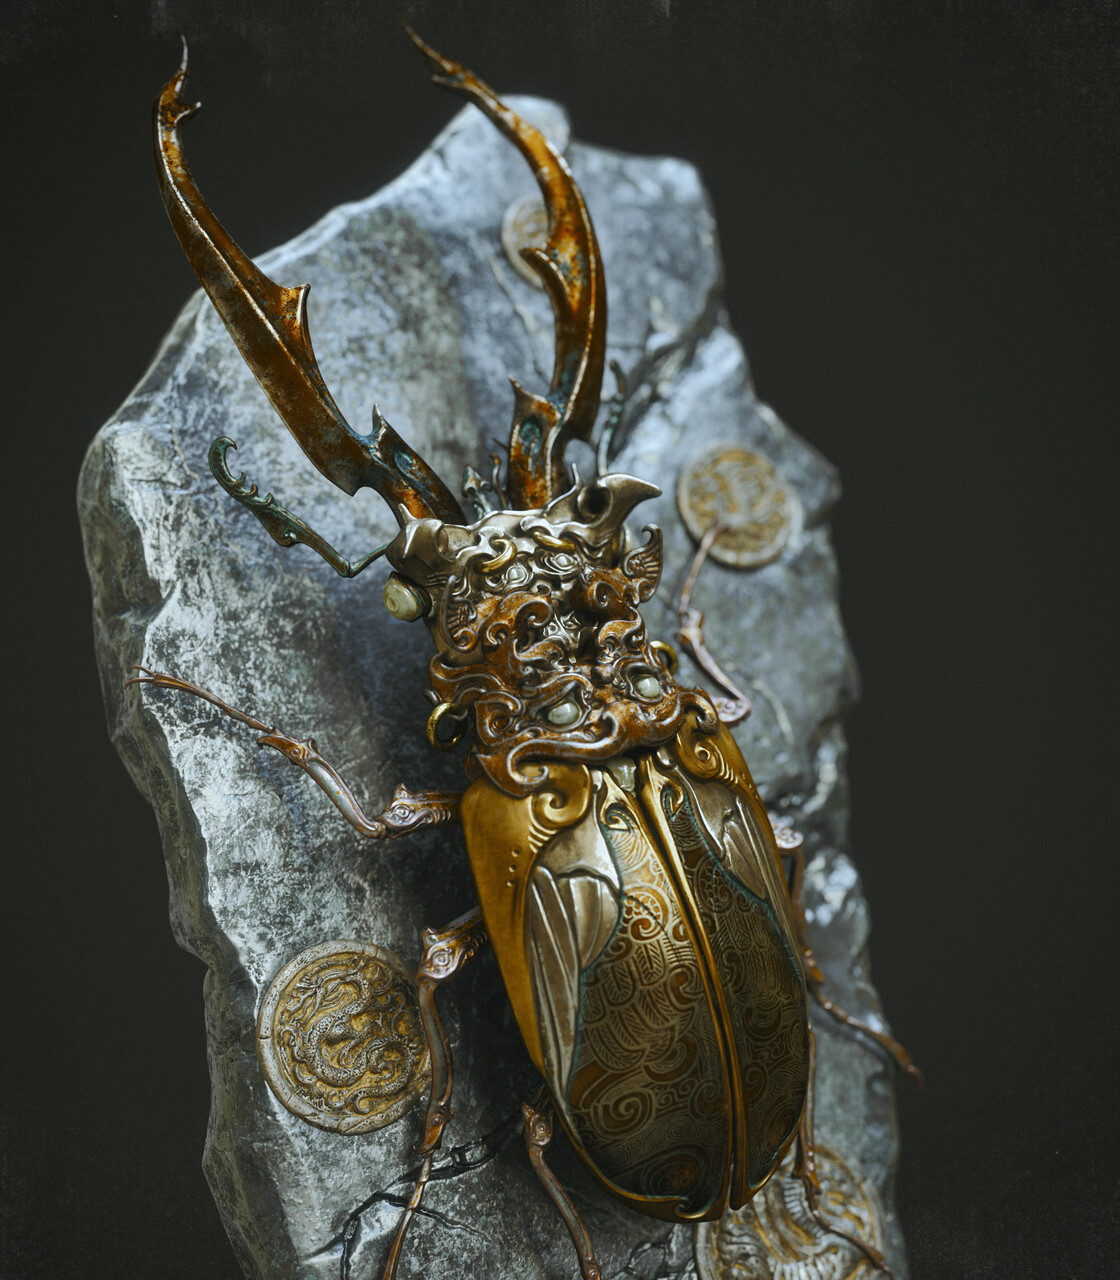 1st Place Adobe Dimension & Adobe Stock - The Art of 3D Insects Challenge: Zhelong Xu